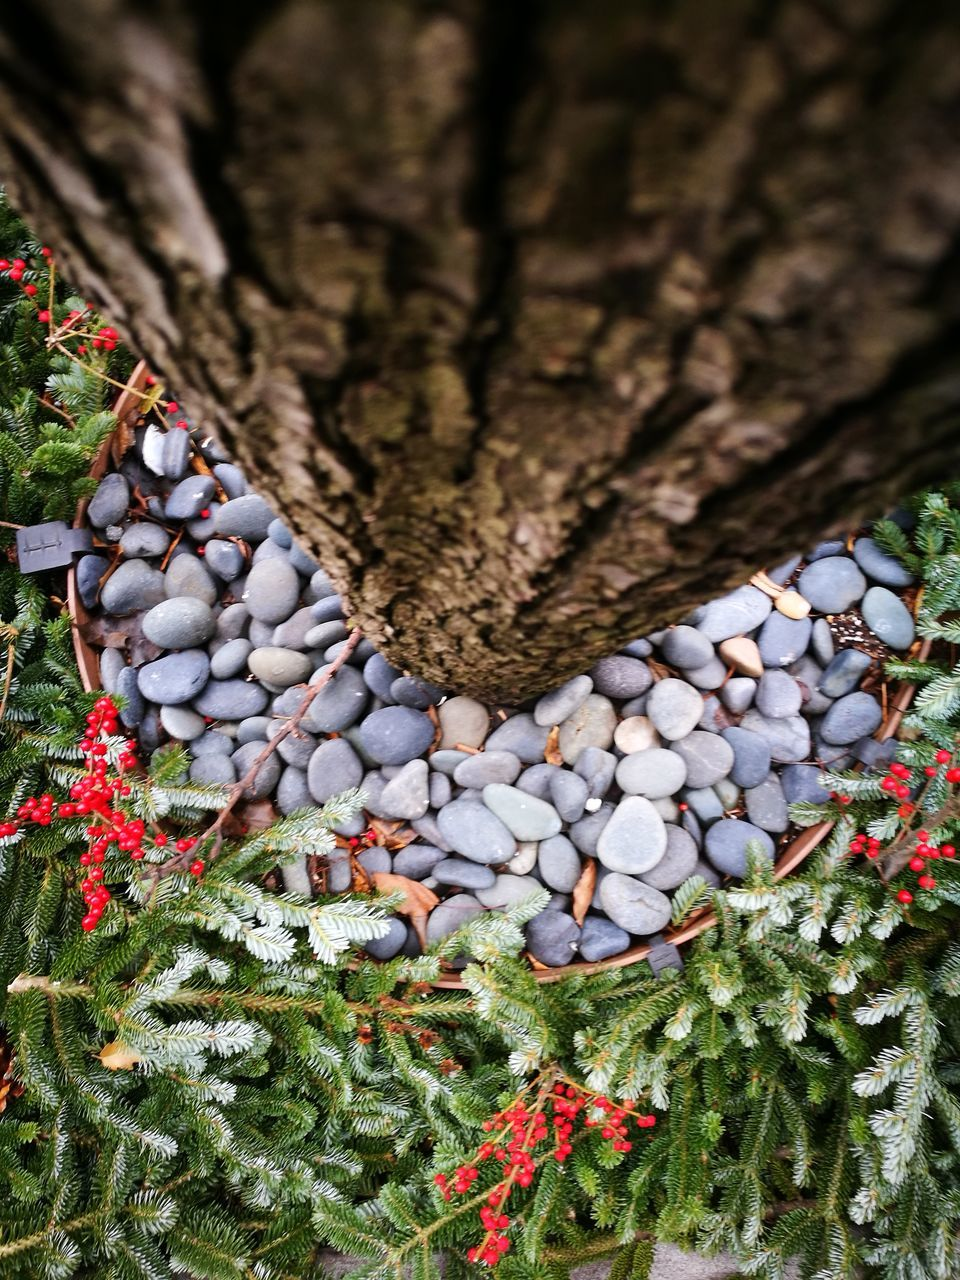 no people, outdoors, nature, pebble, day, close-up, tree, beauty in nature